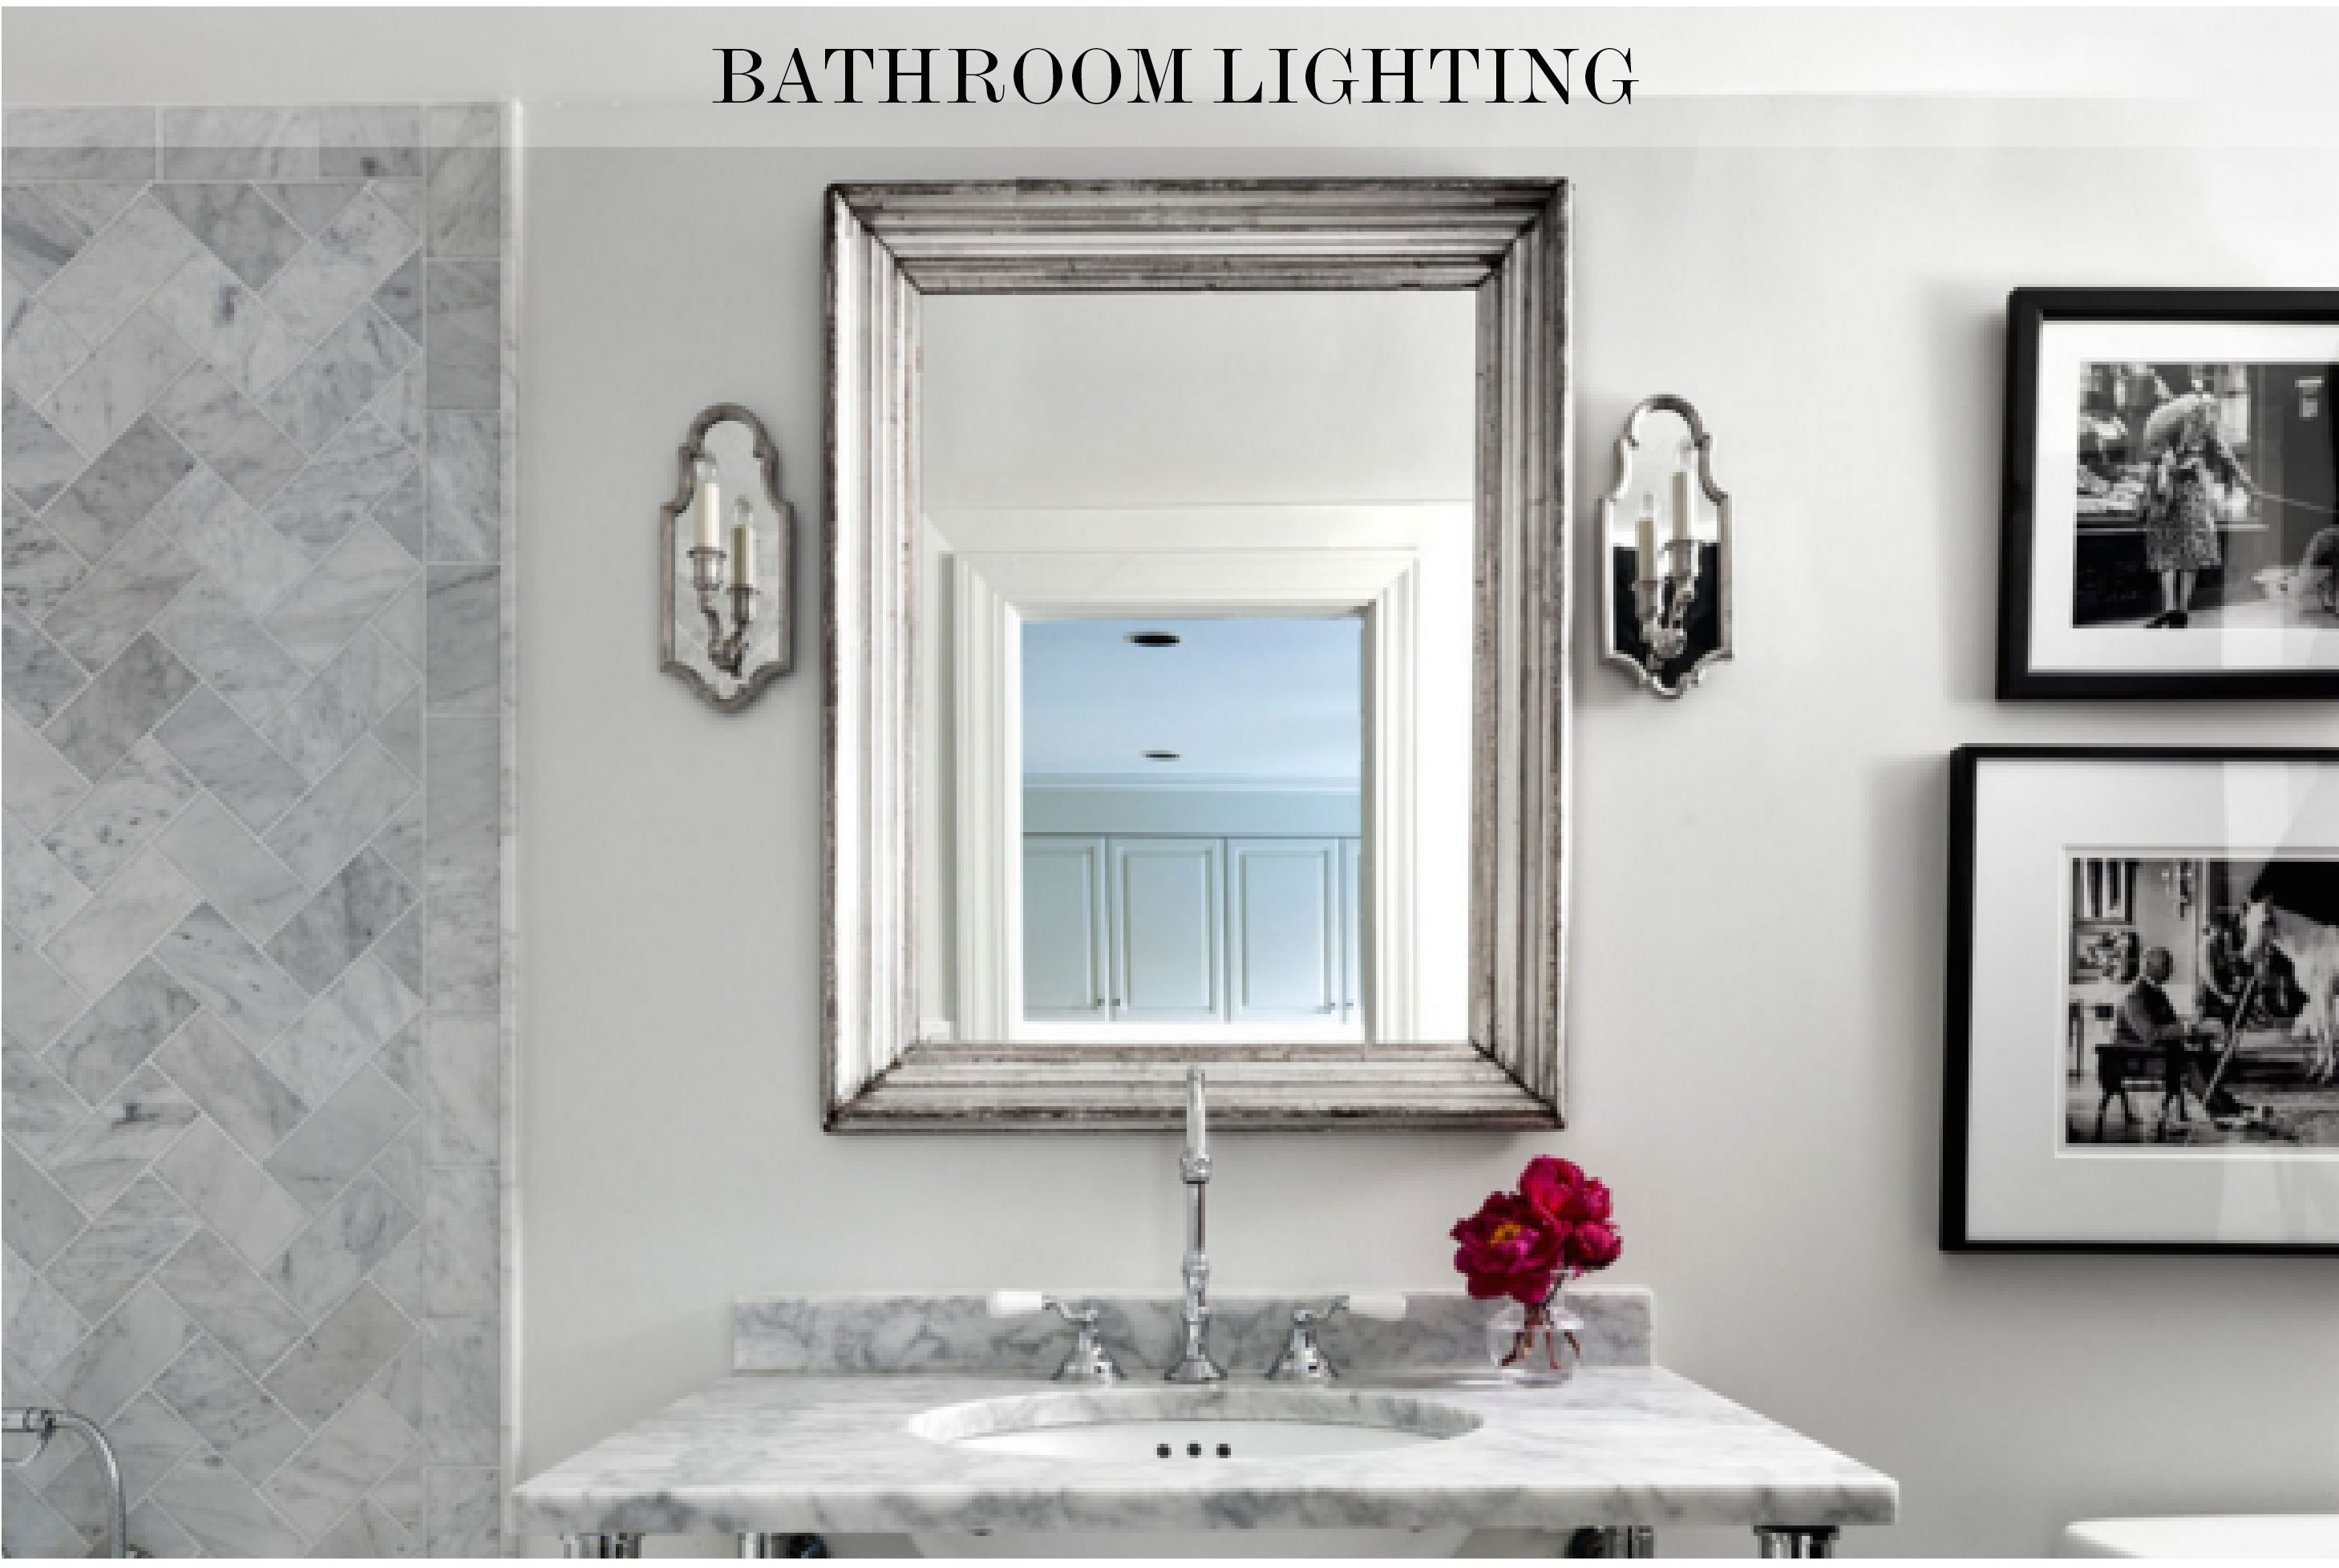 Interior Renovation Lighting Design – Part 1: Bathrooms | McGrath II Blog